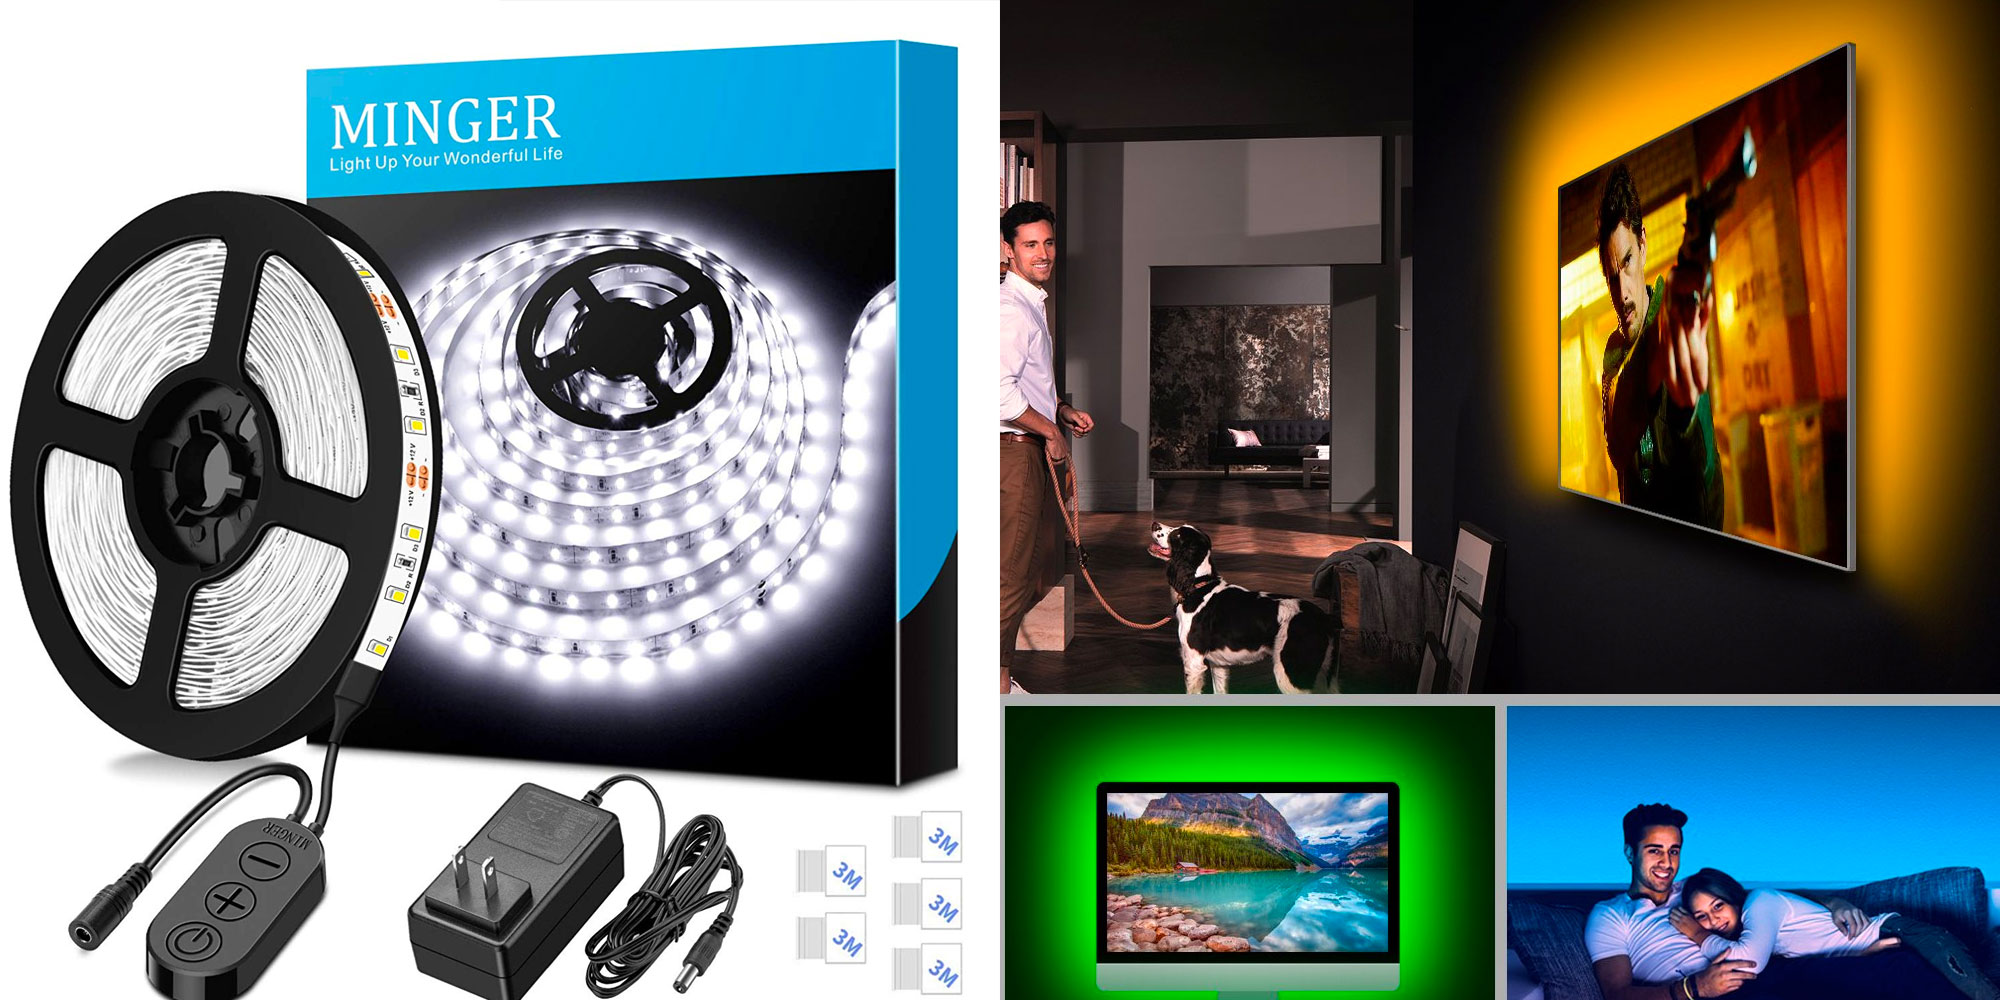 Add RGB bias lighting to your home theater setup & more w/ these LED strips from $8